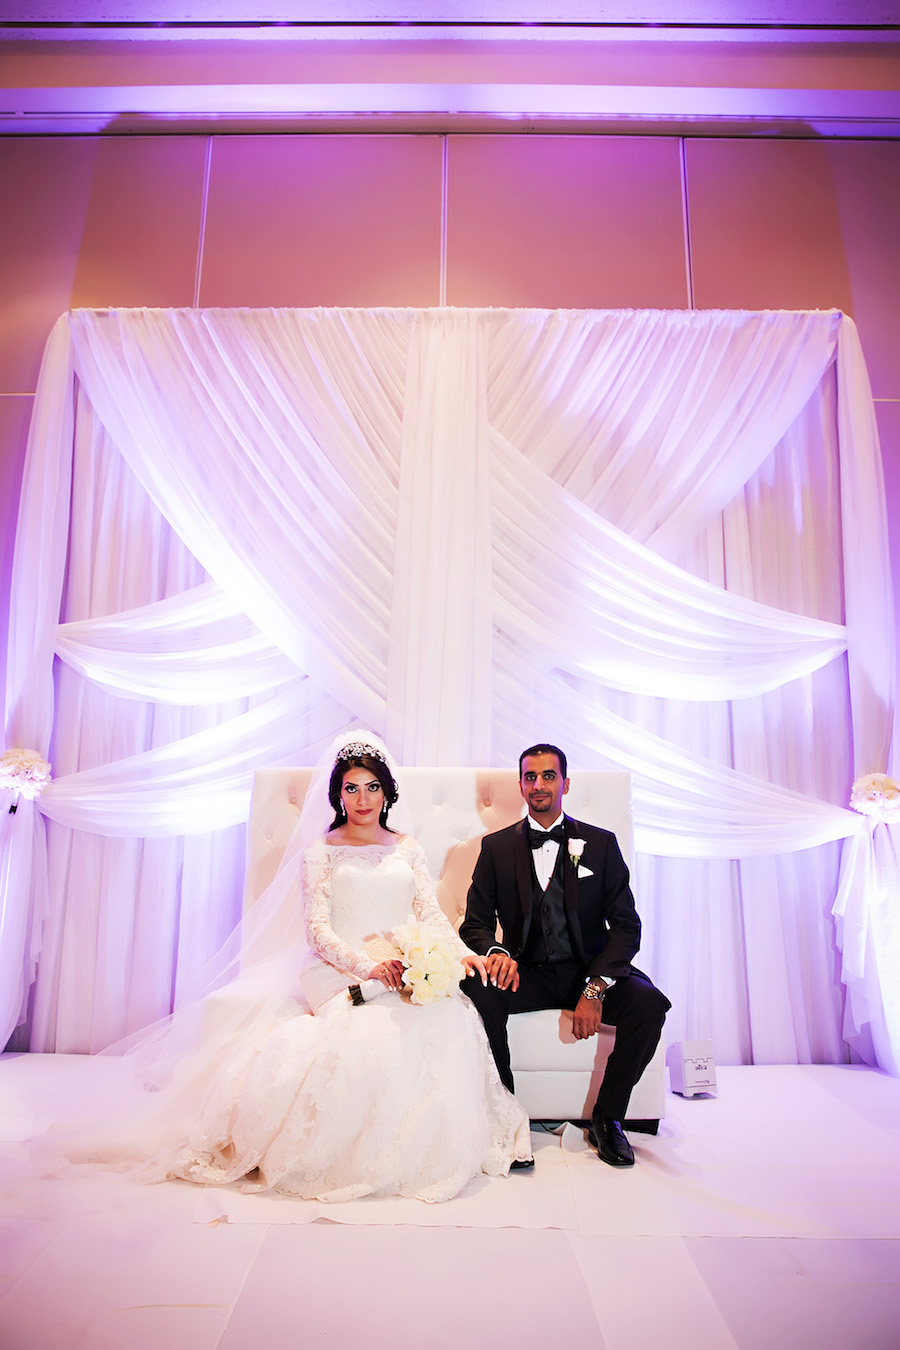 Elegant Indian Bride and Groom Ballroom Wedding Portrait with White Drapery Backdrop and Purple Uplighting | Downtown Tampa Hotel Wedding Venue Hilton Downtown | Wedding Photographer Limelight Photography